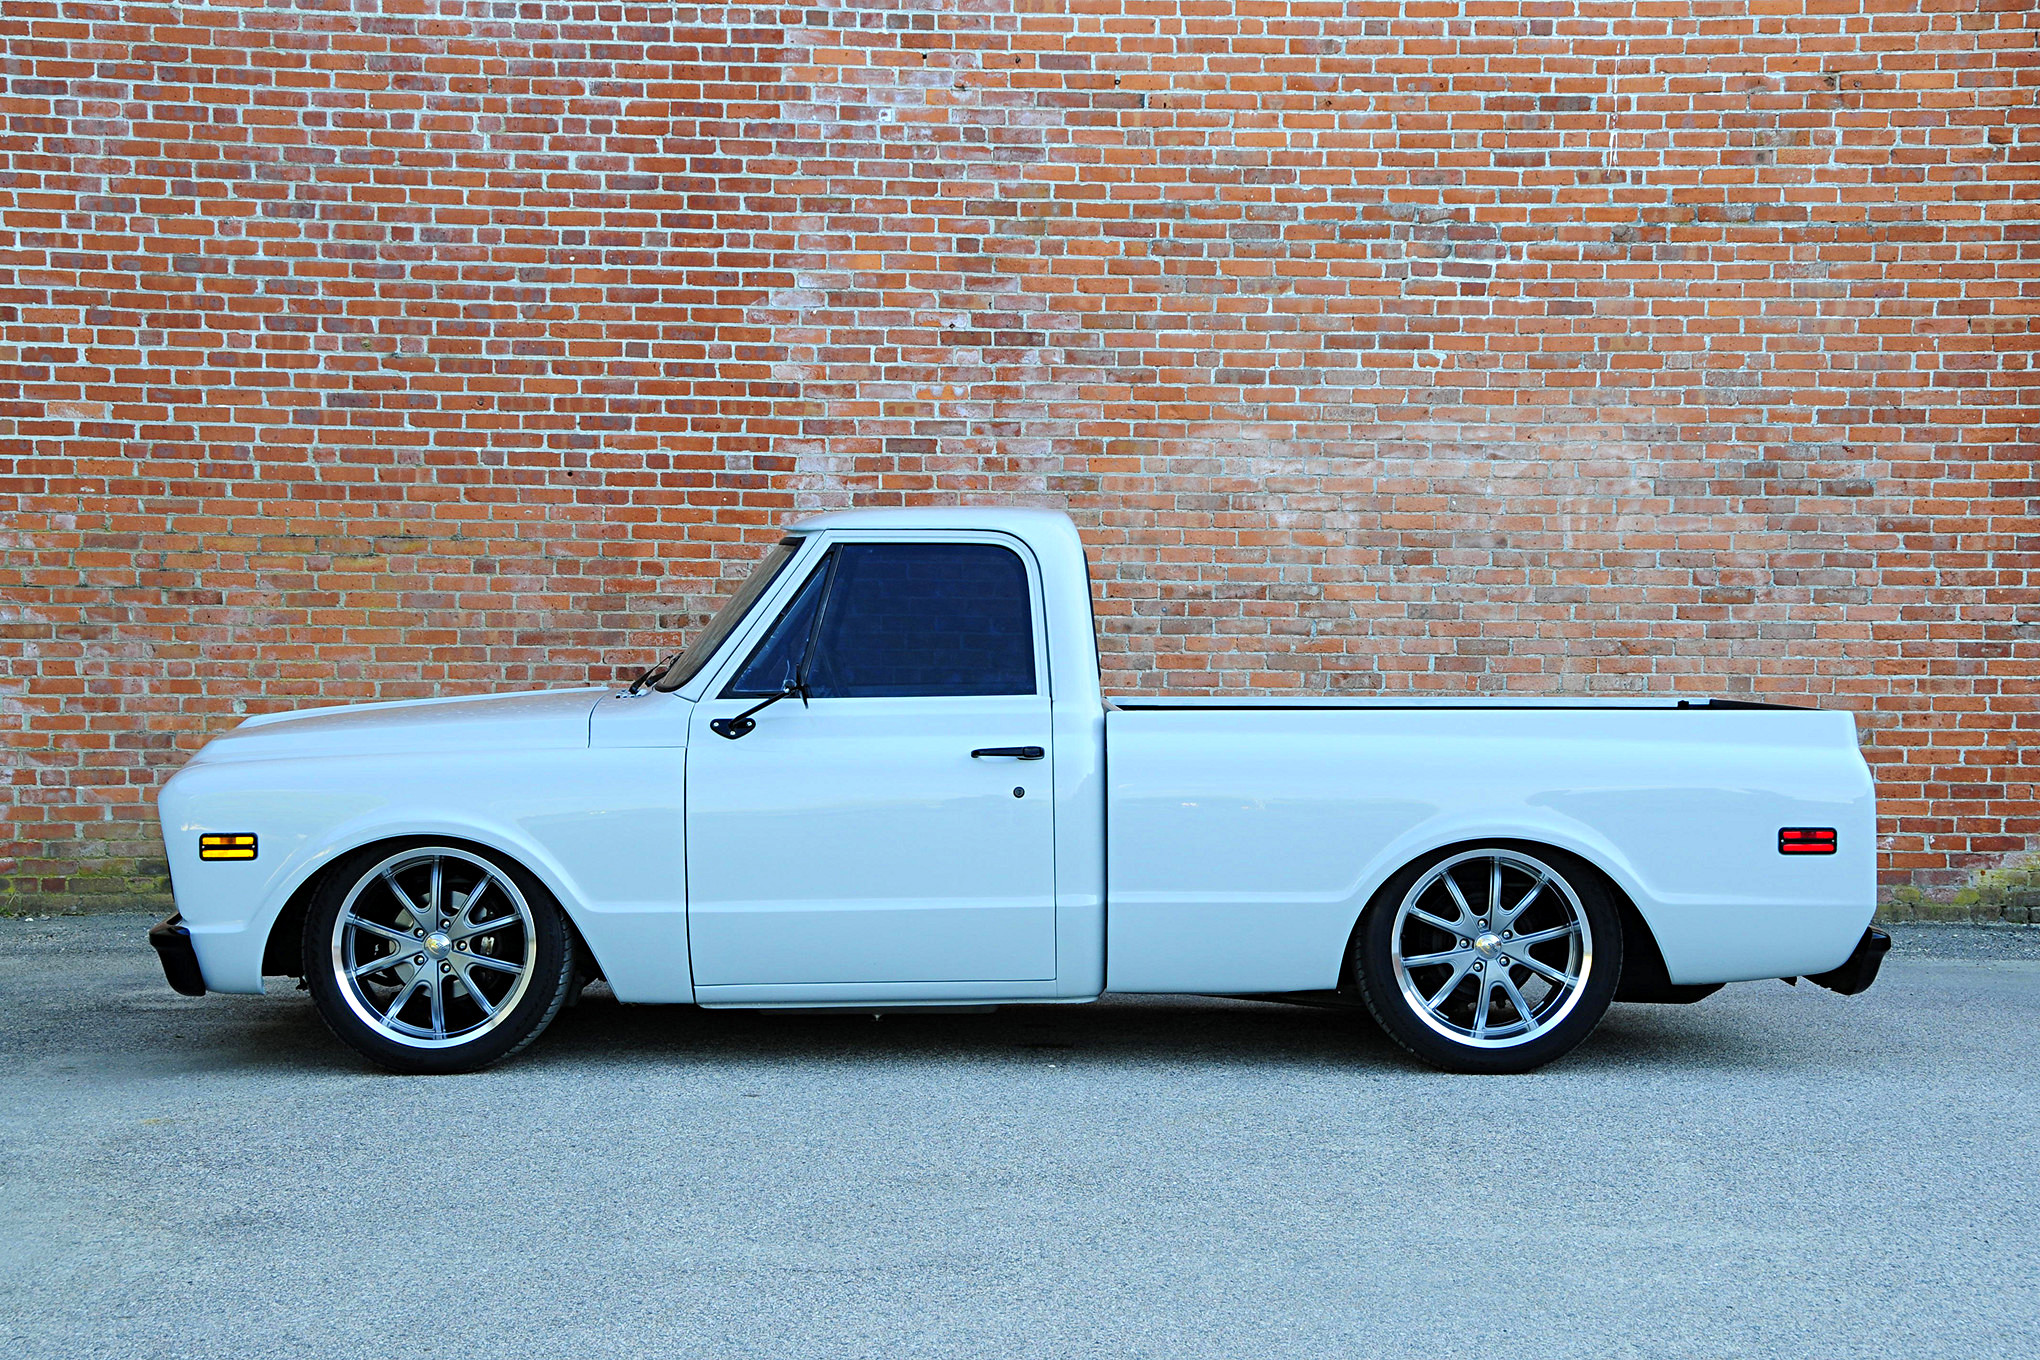 1972 Chevrolet C10 Full Hd Wallpaper And Background Image